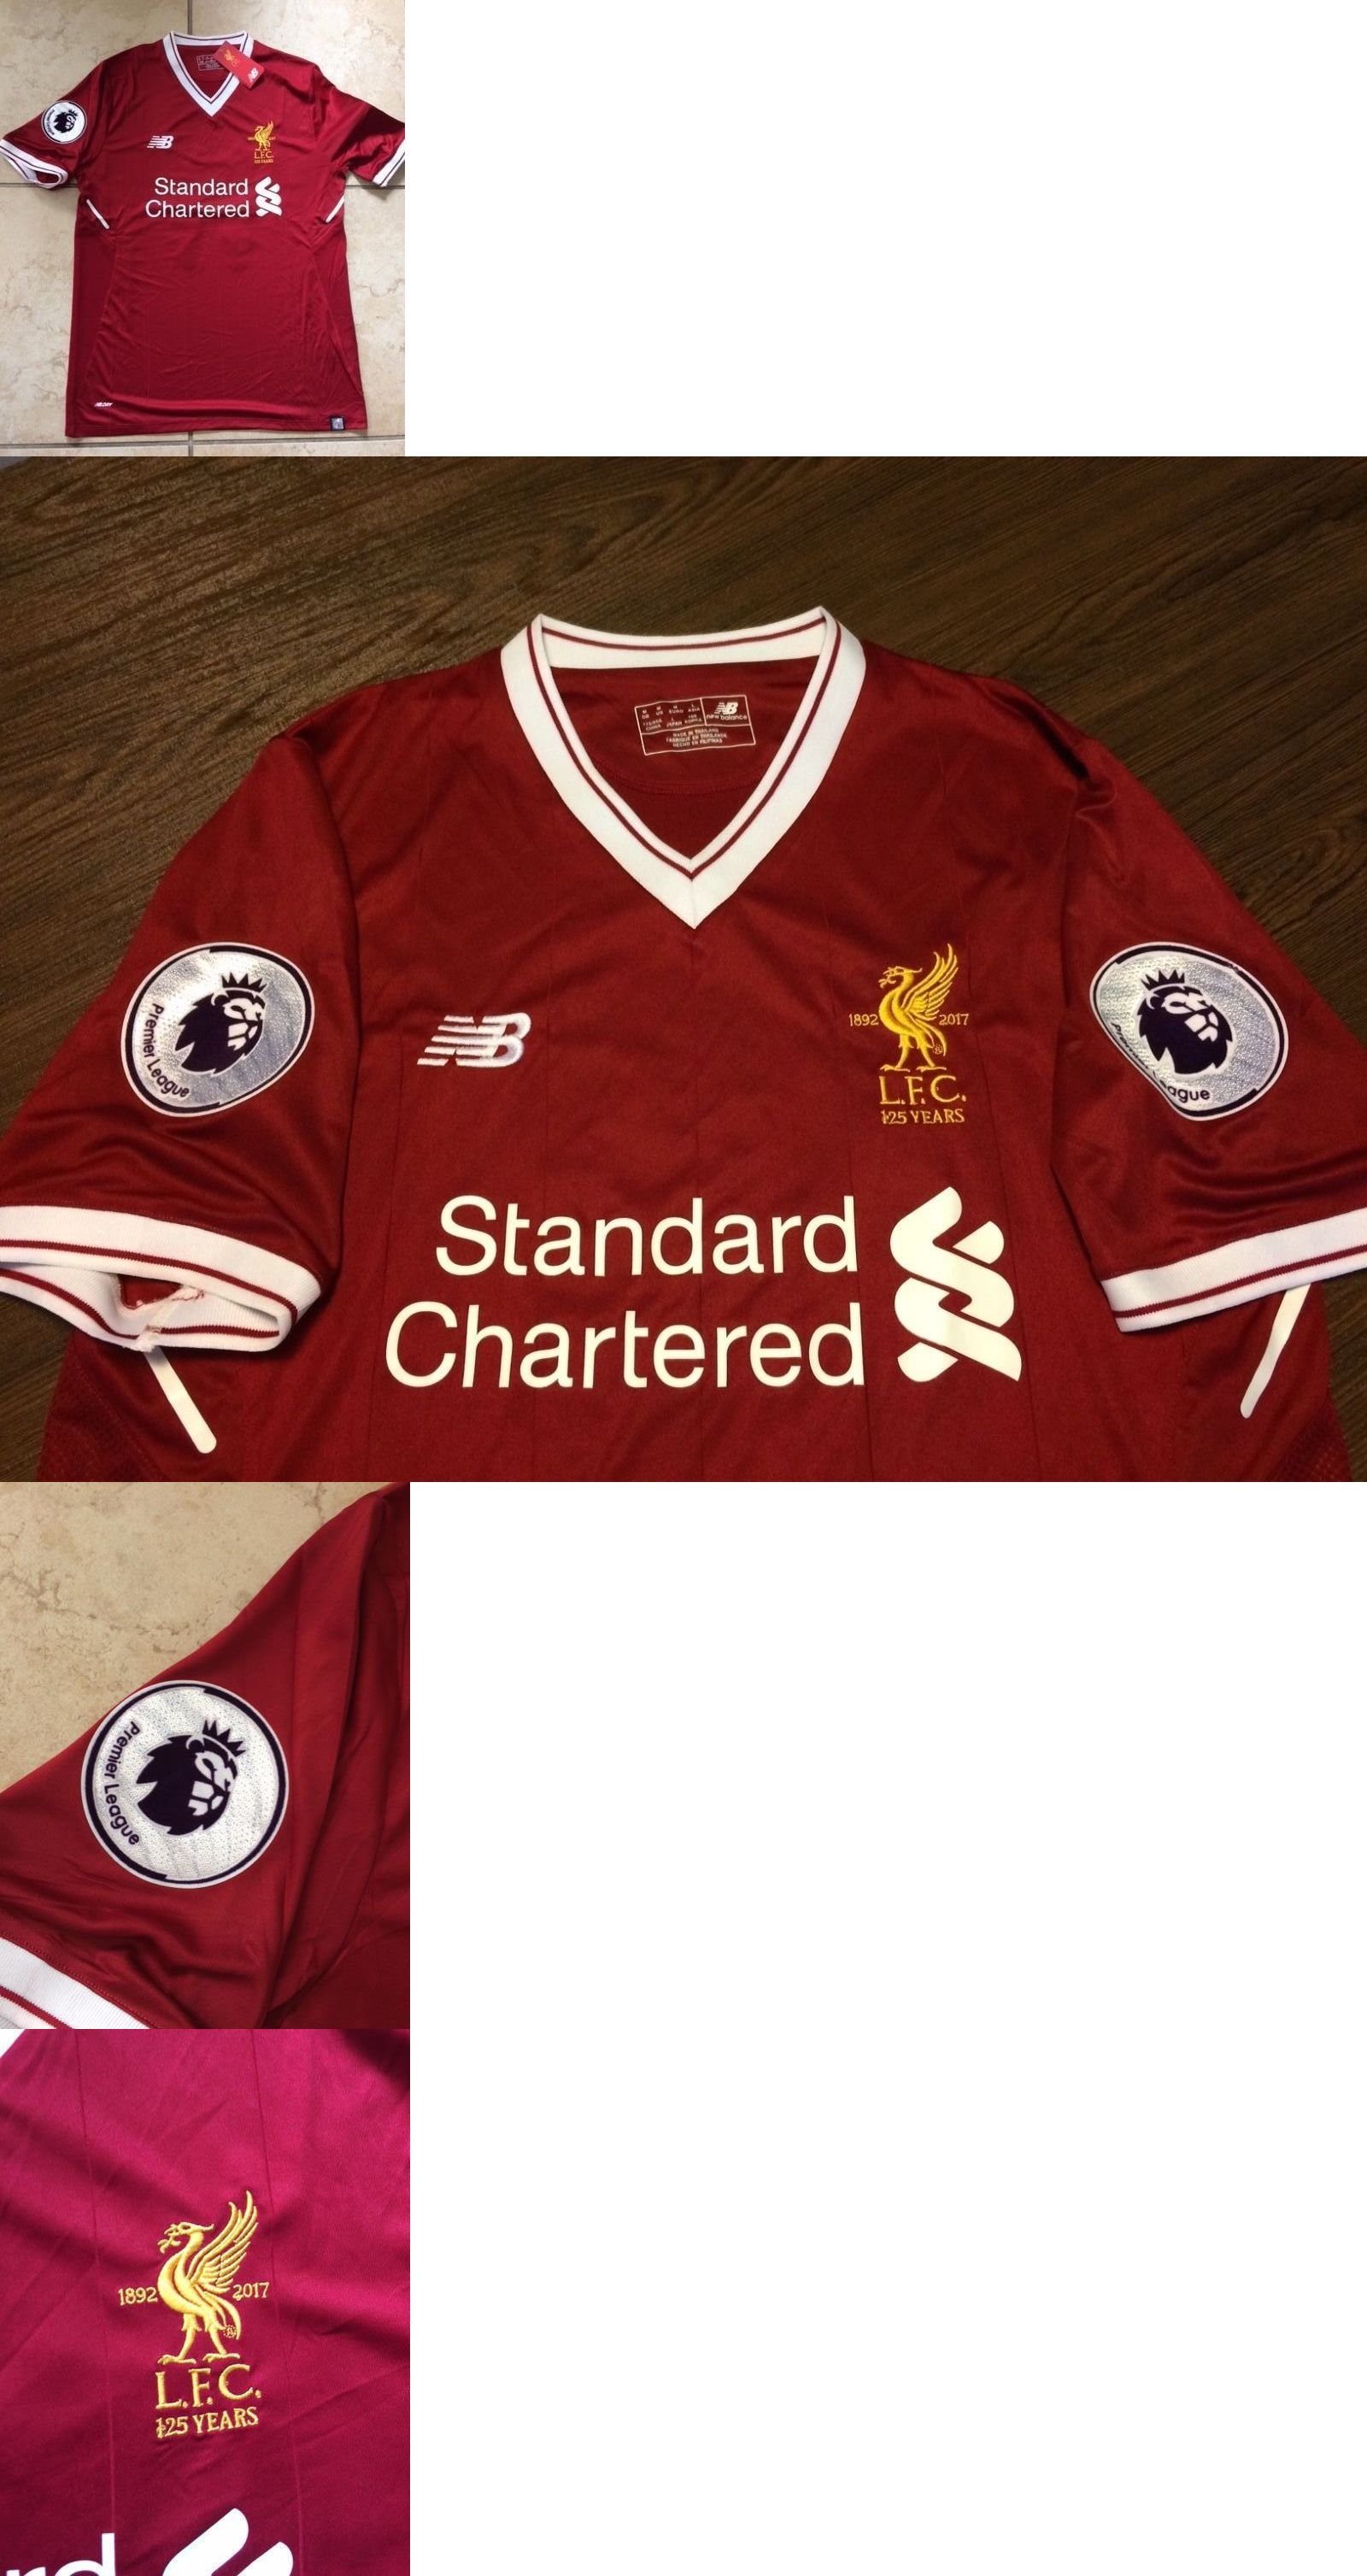 d956c5981 ... Soccer-International Clubs 2887 Firmino 9 Liverpool Home Jersey Mohamed  Salah With 2 Premier ...